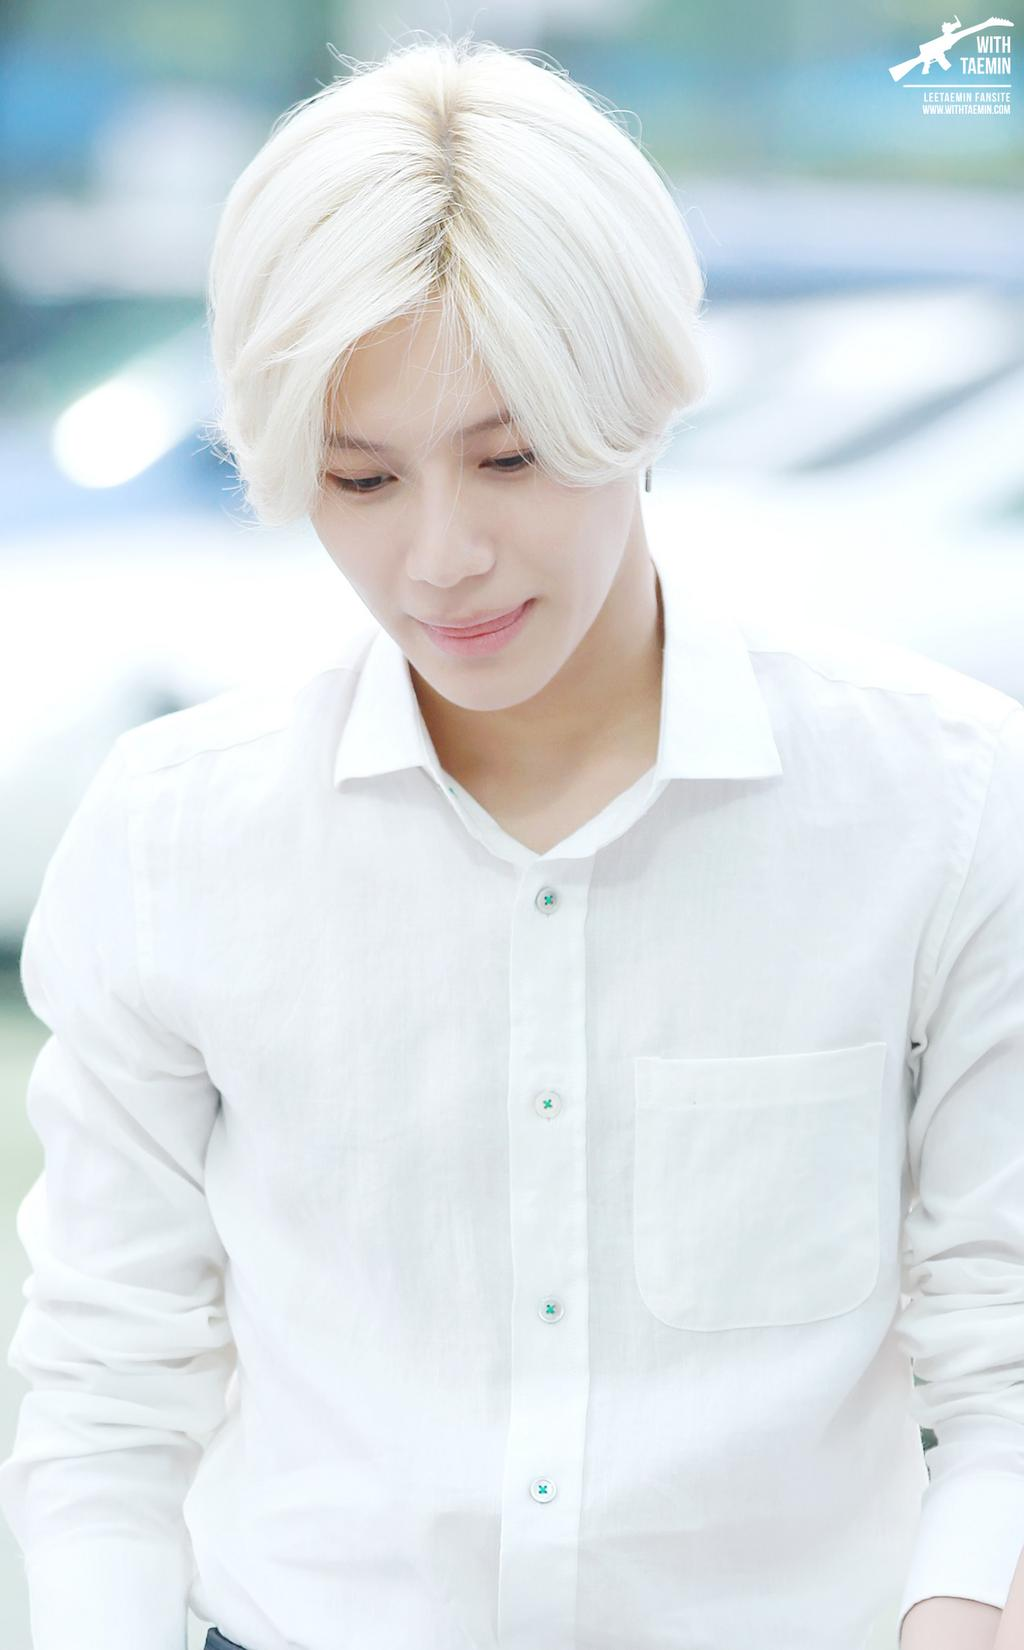 Yoonmin Cute Pictures For Wallpapers White Hair Taemin